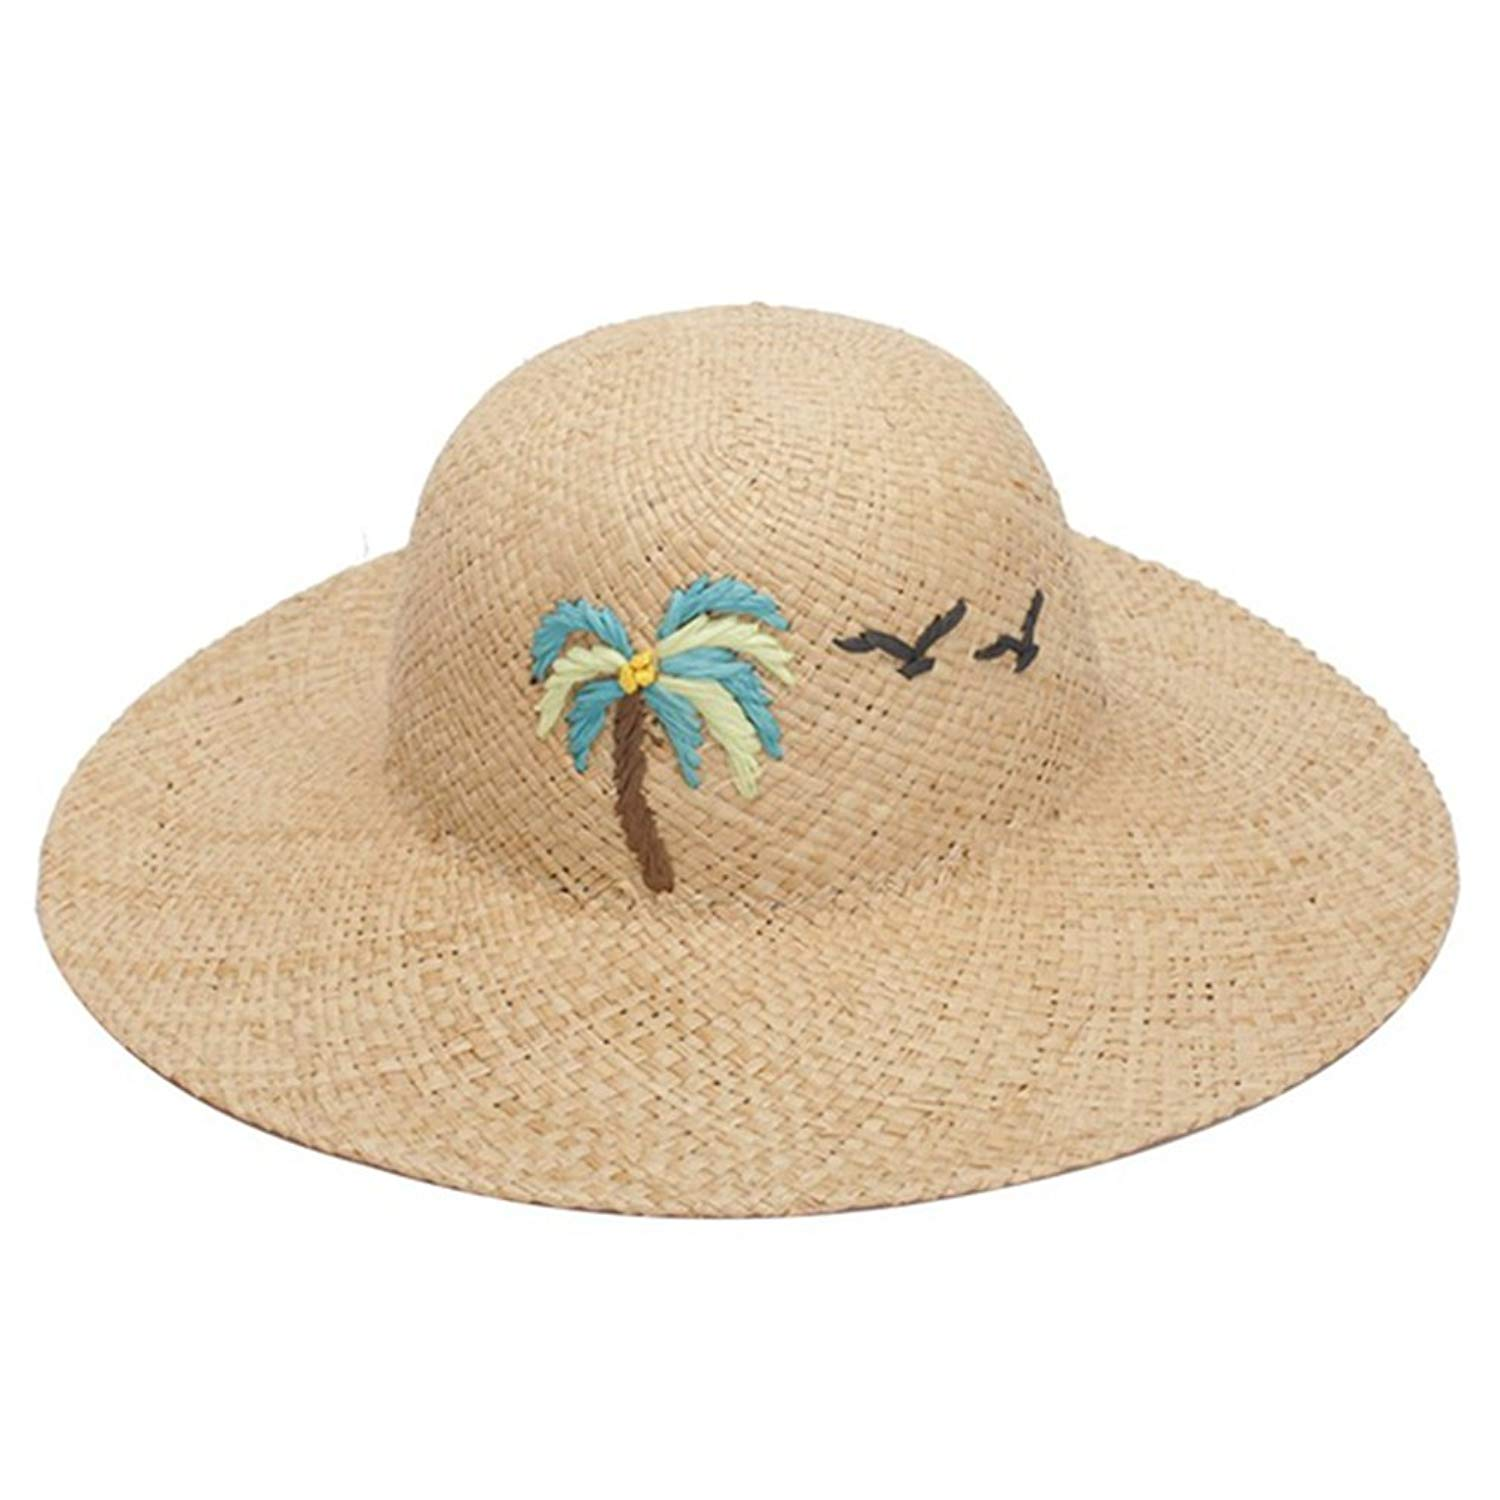 August Jim Summer Hats for Women, Embroidery Coconut Tree Pattern Hat Beach Cap